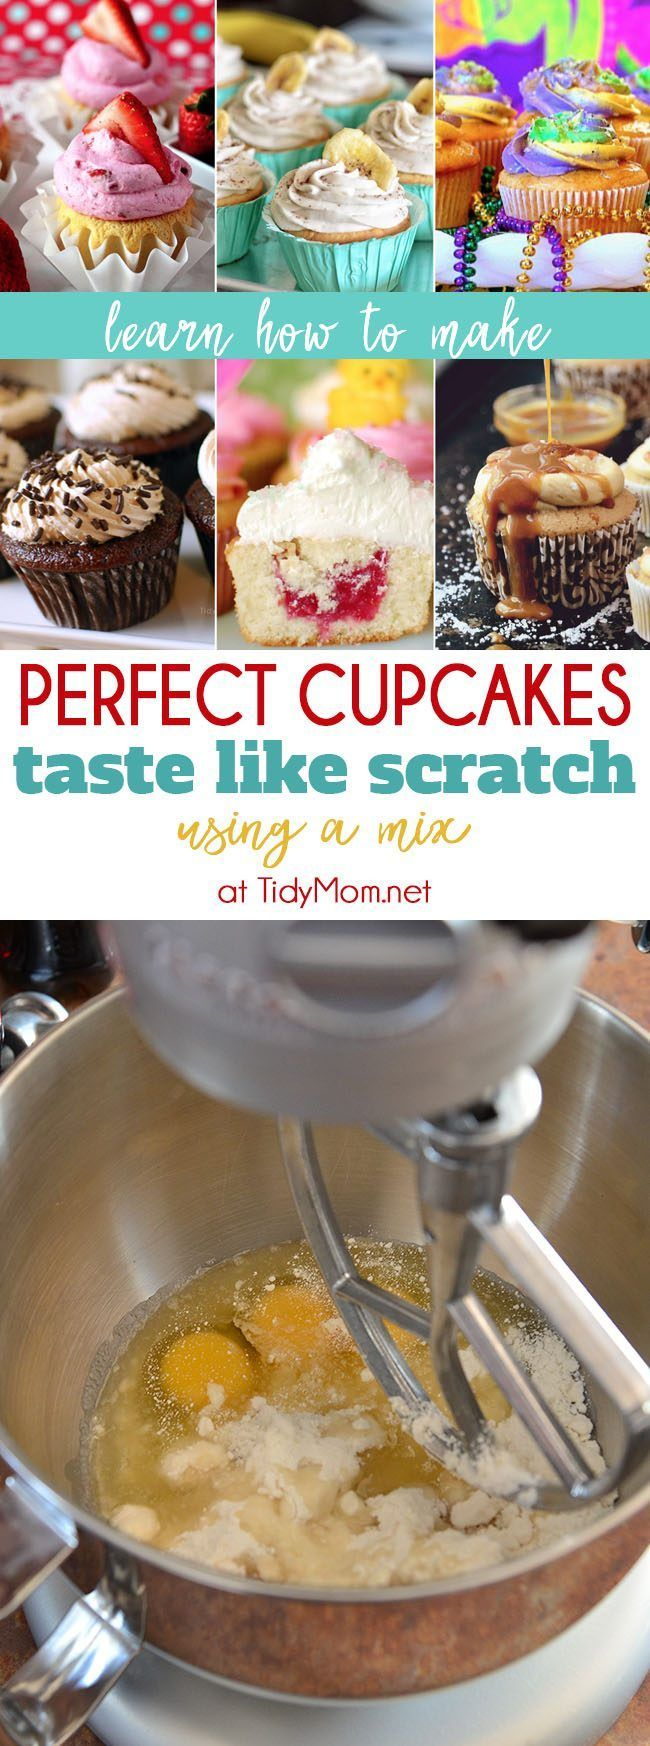 Perfect Cupcake Recipe using a box mix is my all time favorite, go to recipe for cupcakes. You can use this trick to make a box cake mix taste like scratch. Learn more at TidyMom.net